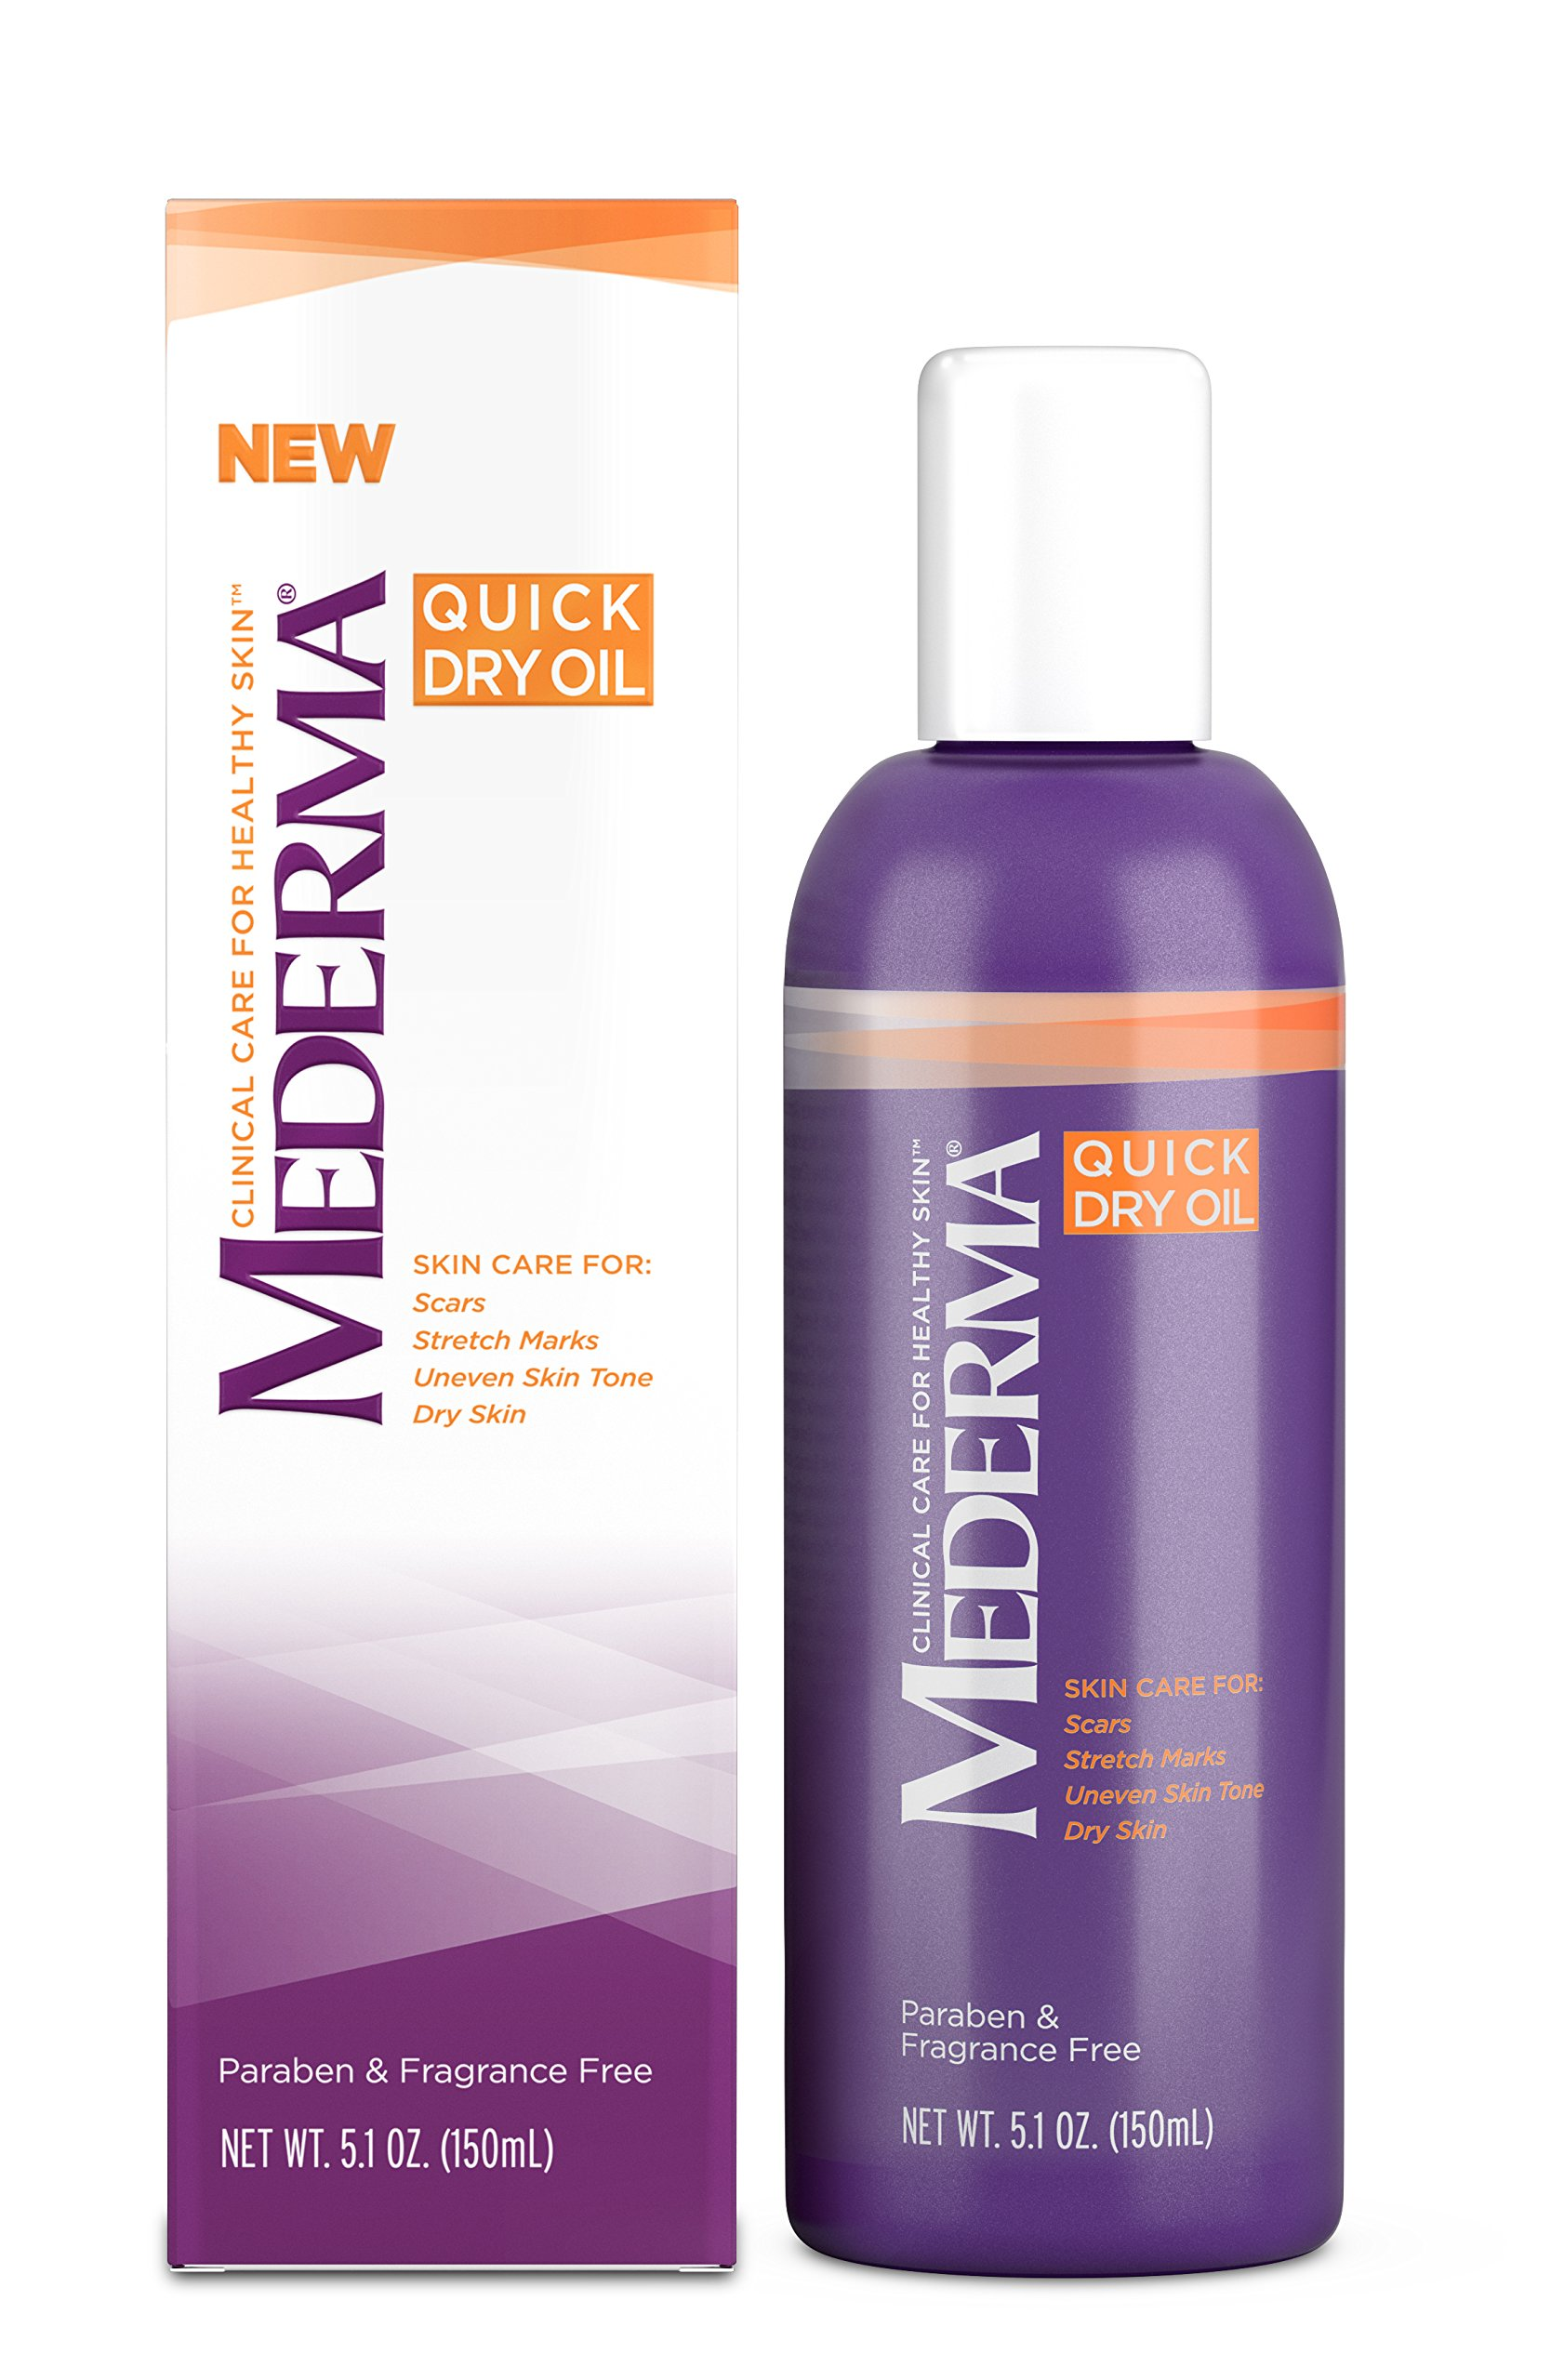 Mederma Quick Dry Oil – formulated to improve the appearance of scars, stretch marks, uneven skin tone and dry skin - #1 scar care brand - fragrance-free, paraben-free - 5.1 ounce